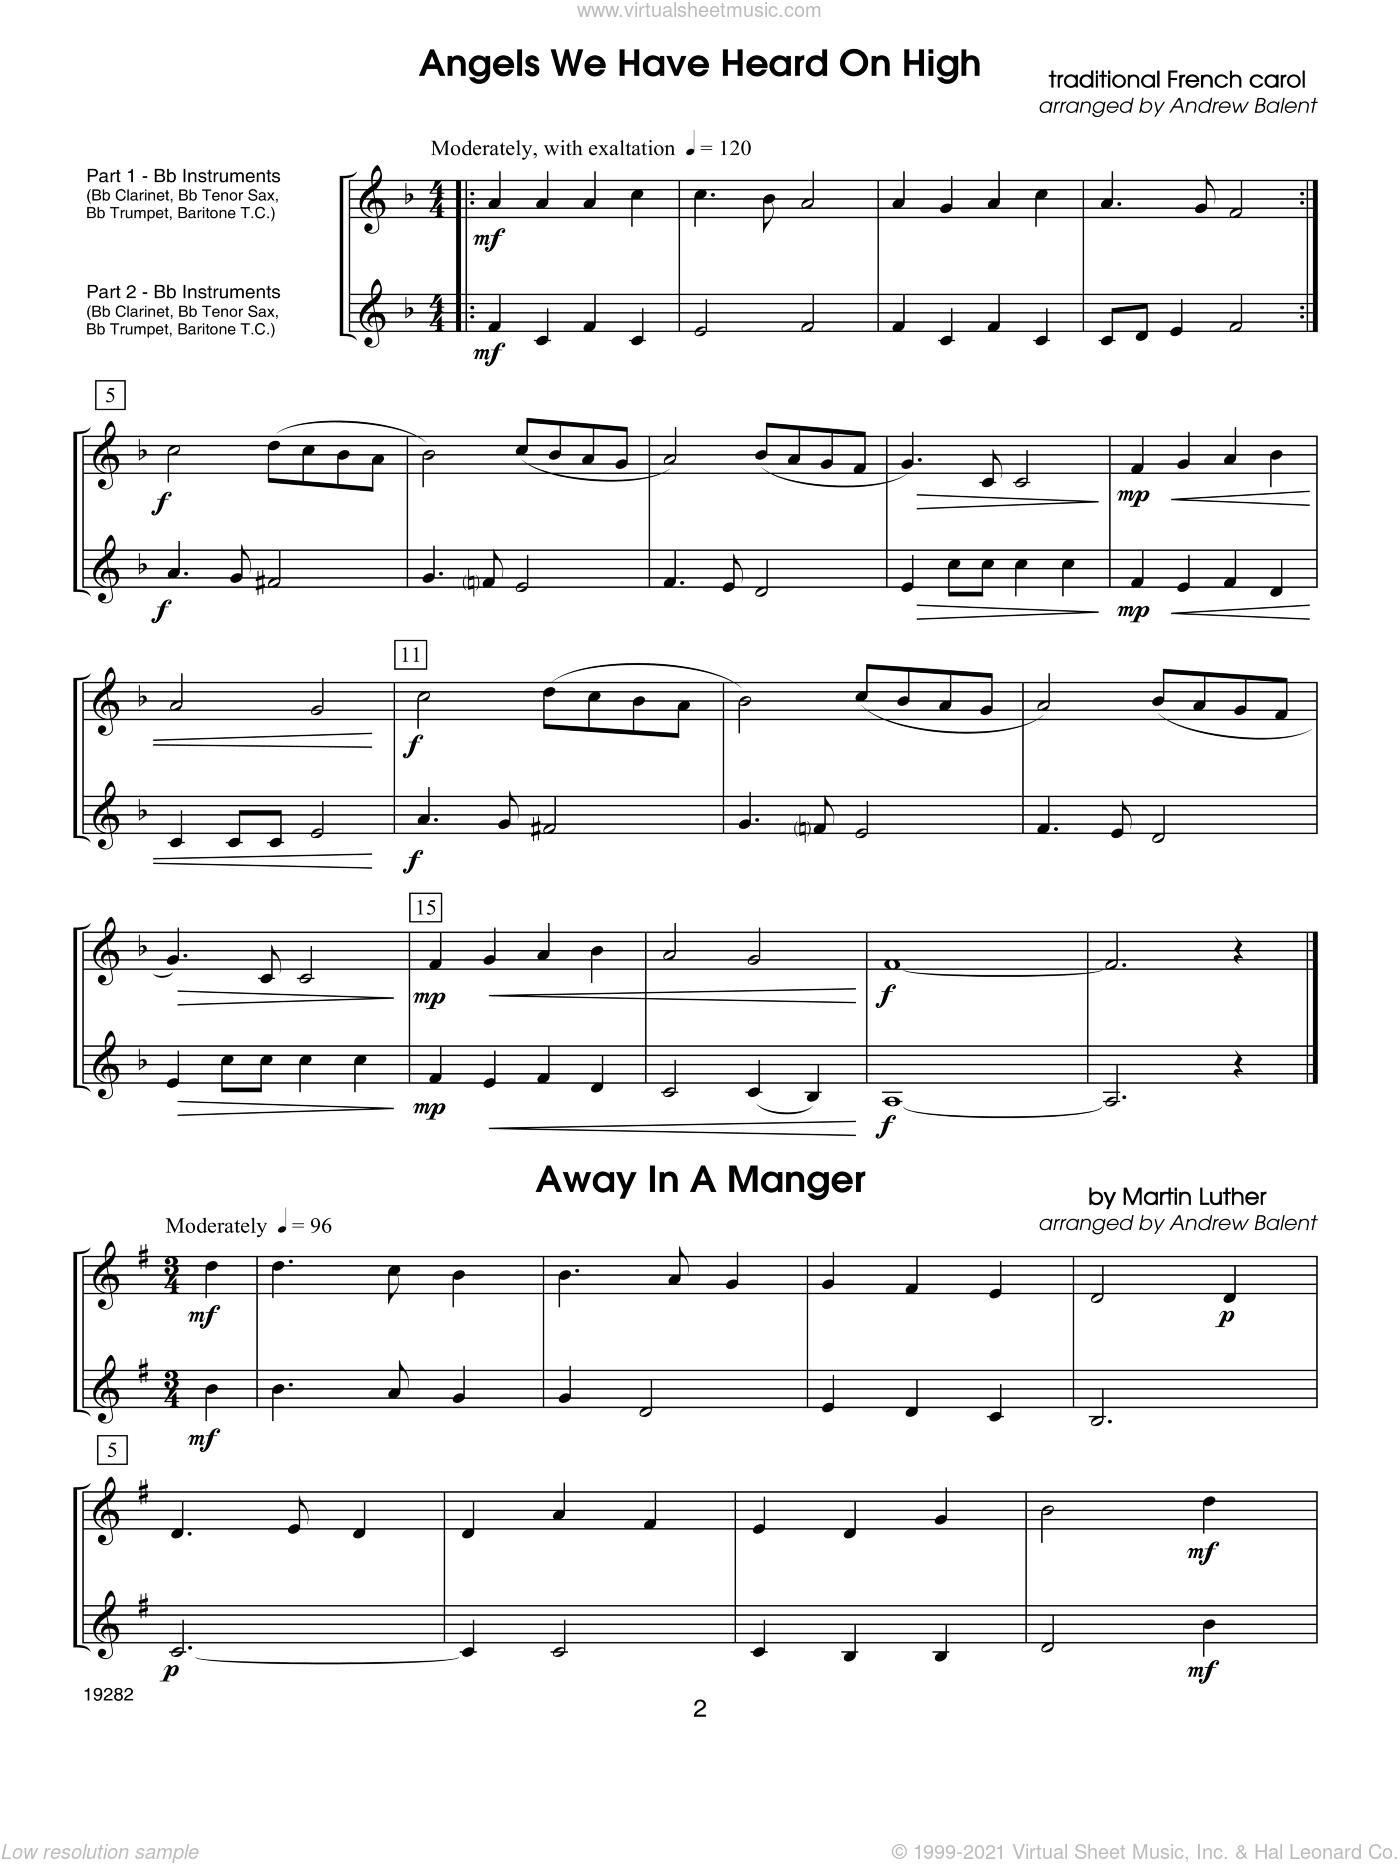 Christmas FlexDuets sheet music for two trumpets or clarinets by Balent, classical score, intermediate duet